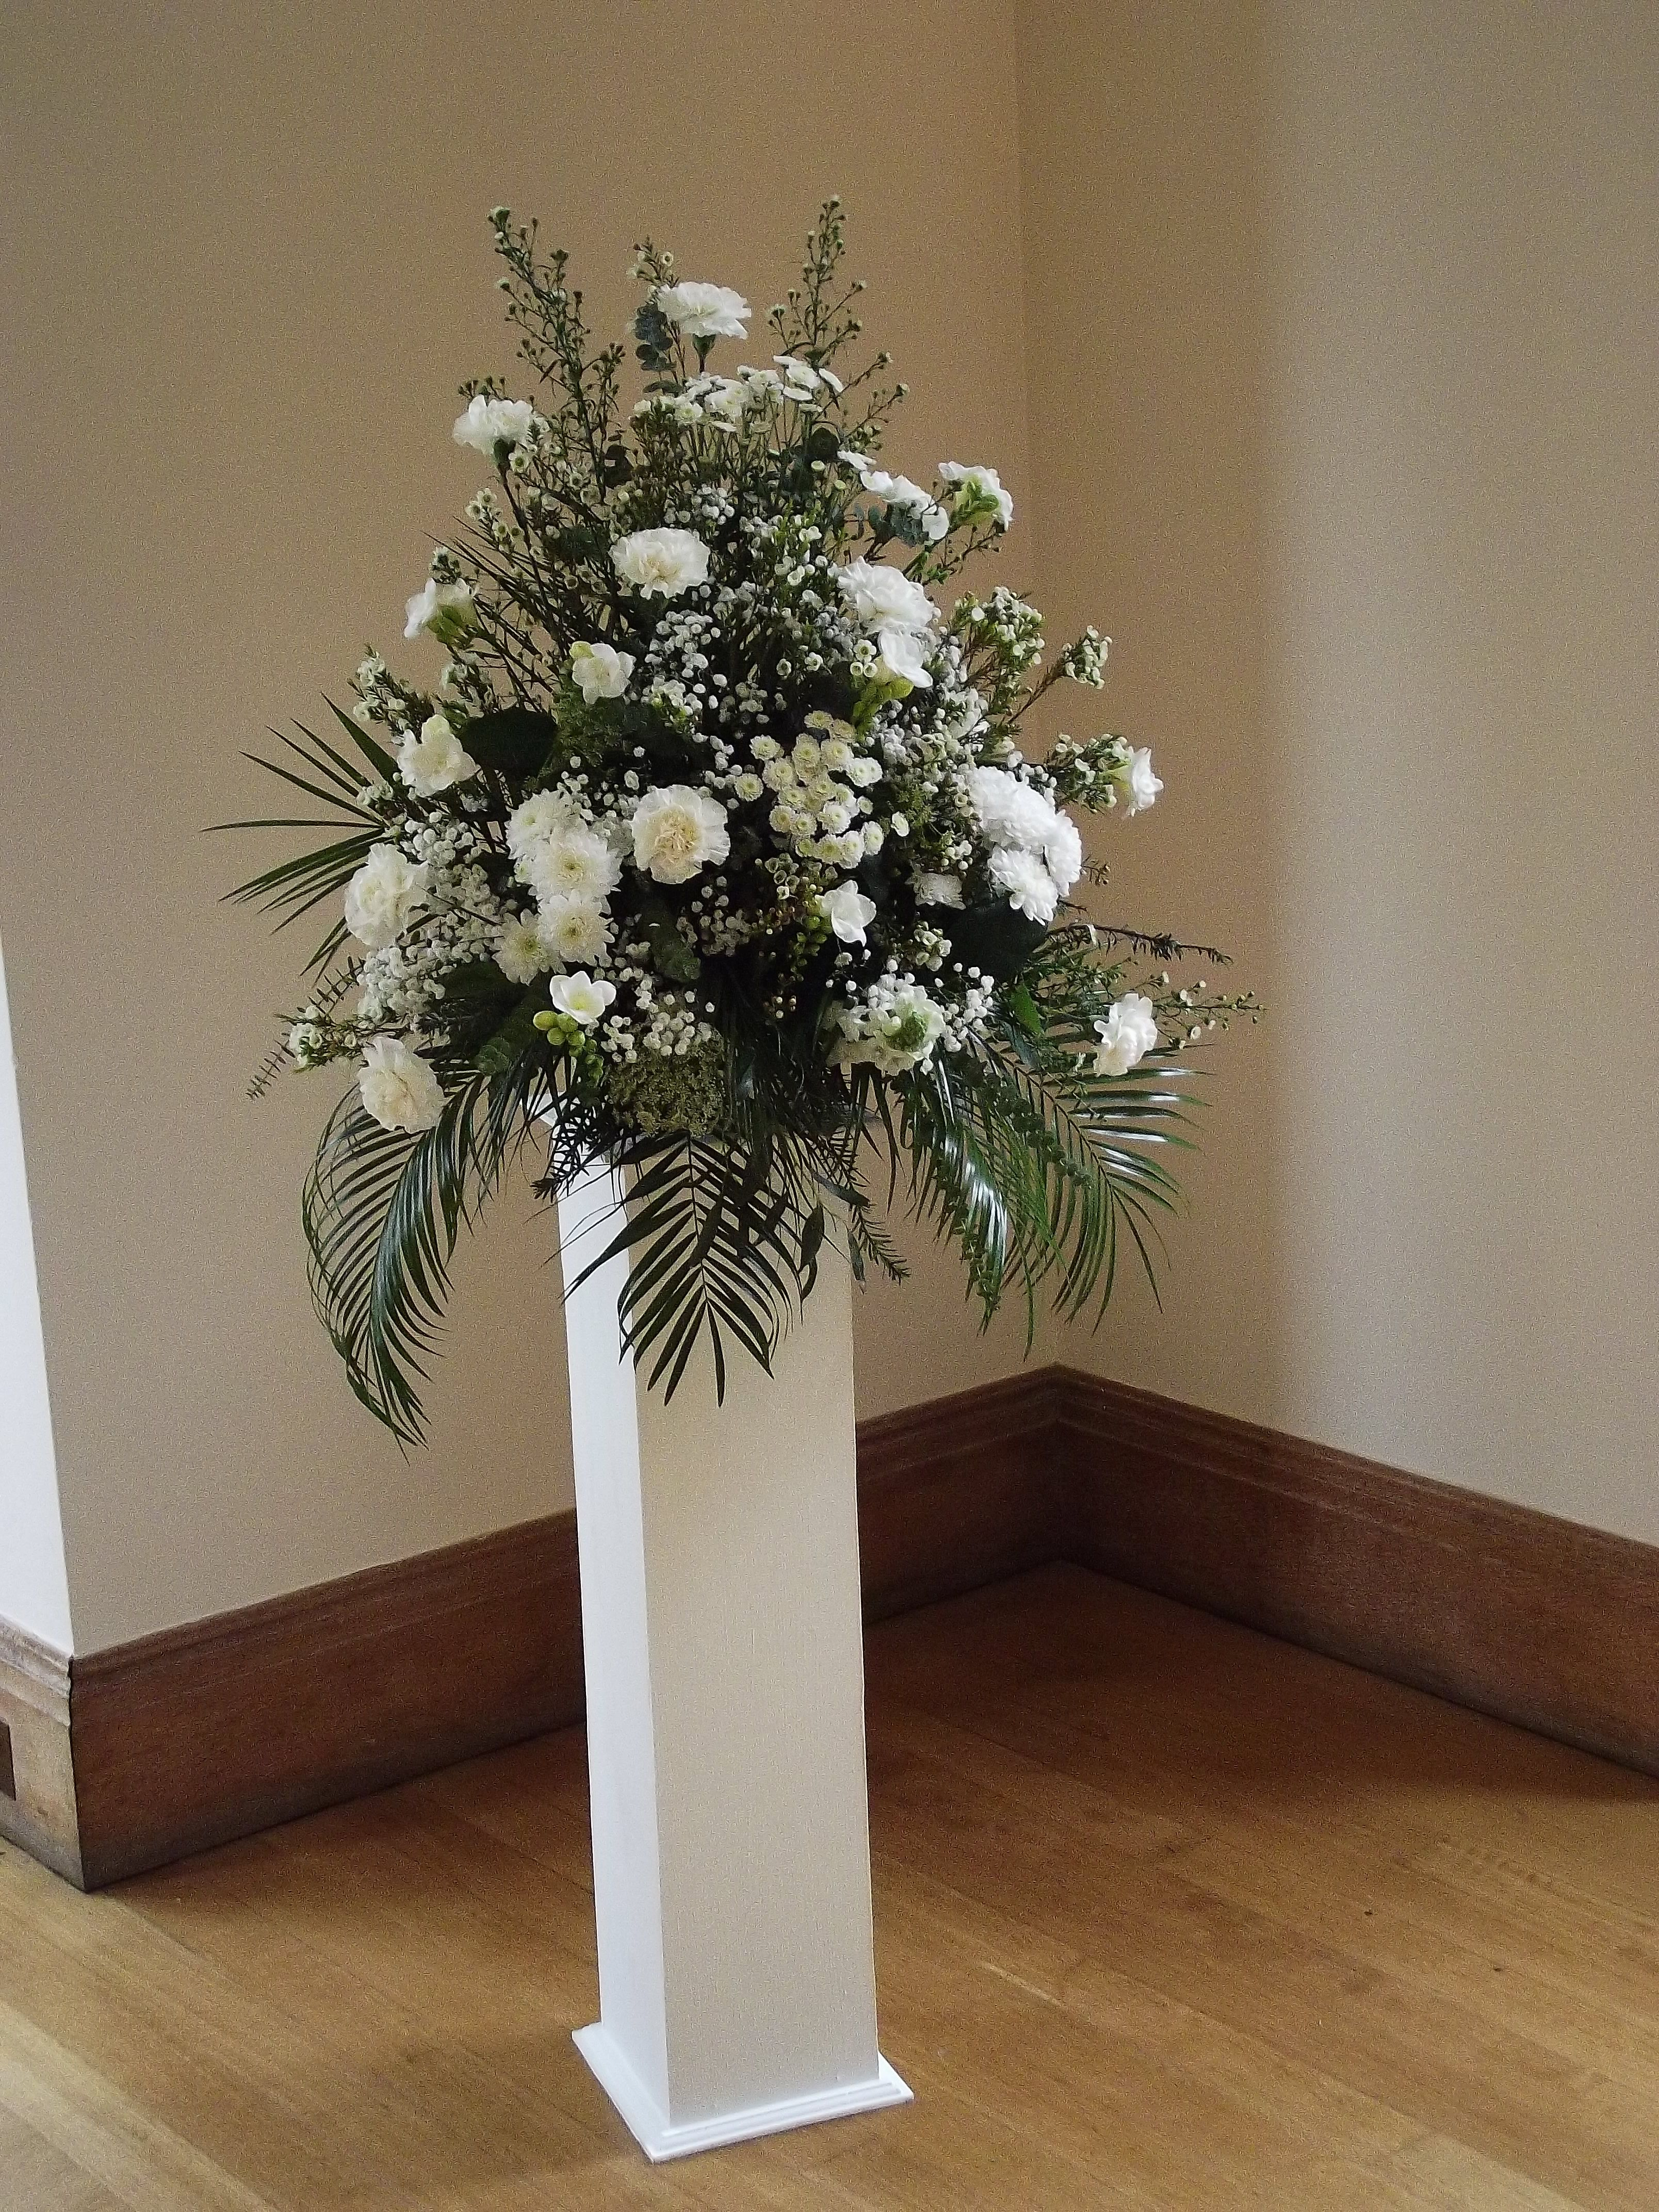 Classic plinth styling with a traditional theme floral arrangement n classic plinth styling with a traditional theme floral arrangement n ivory and white church wedding flowers izmirmasajfo